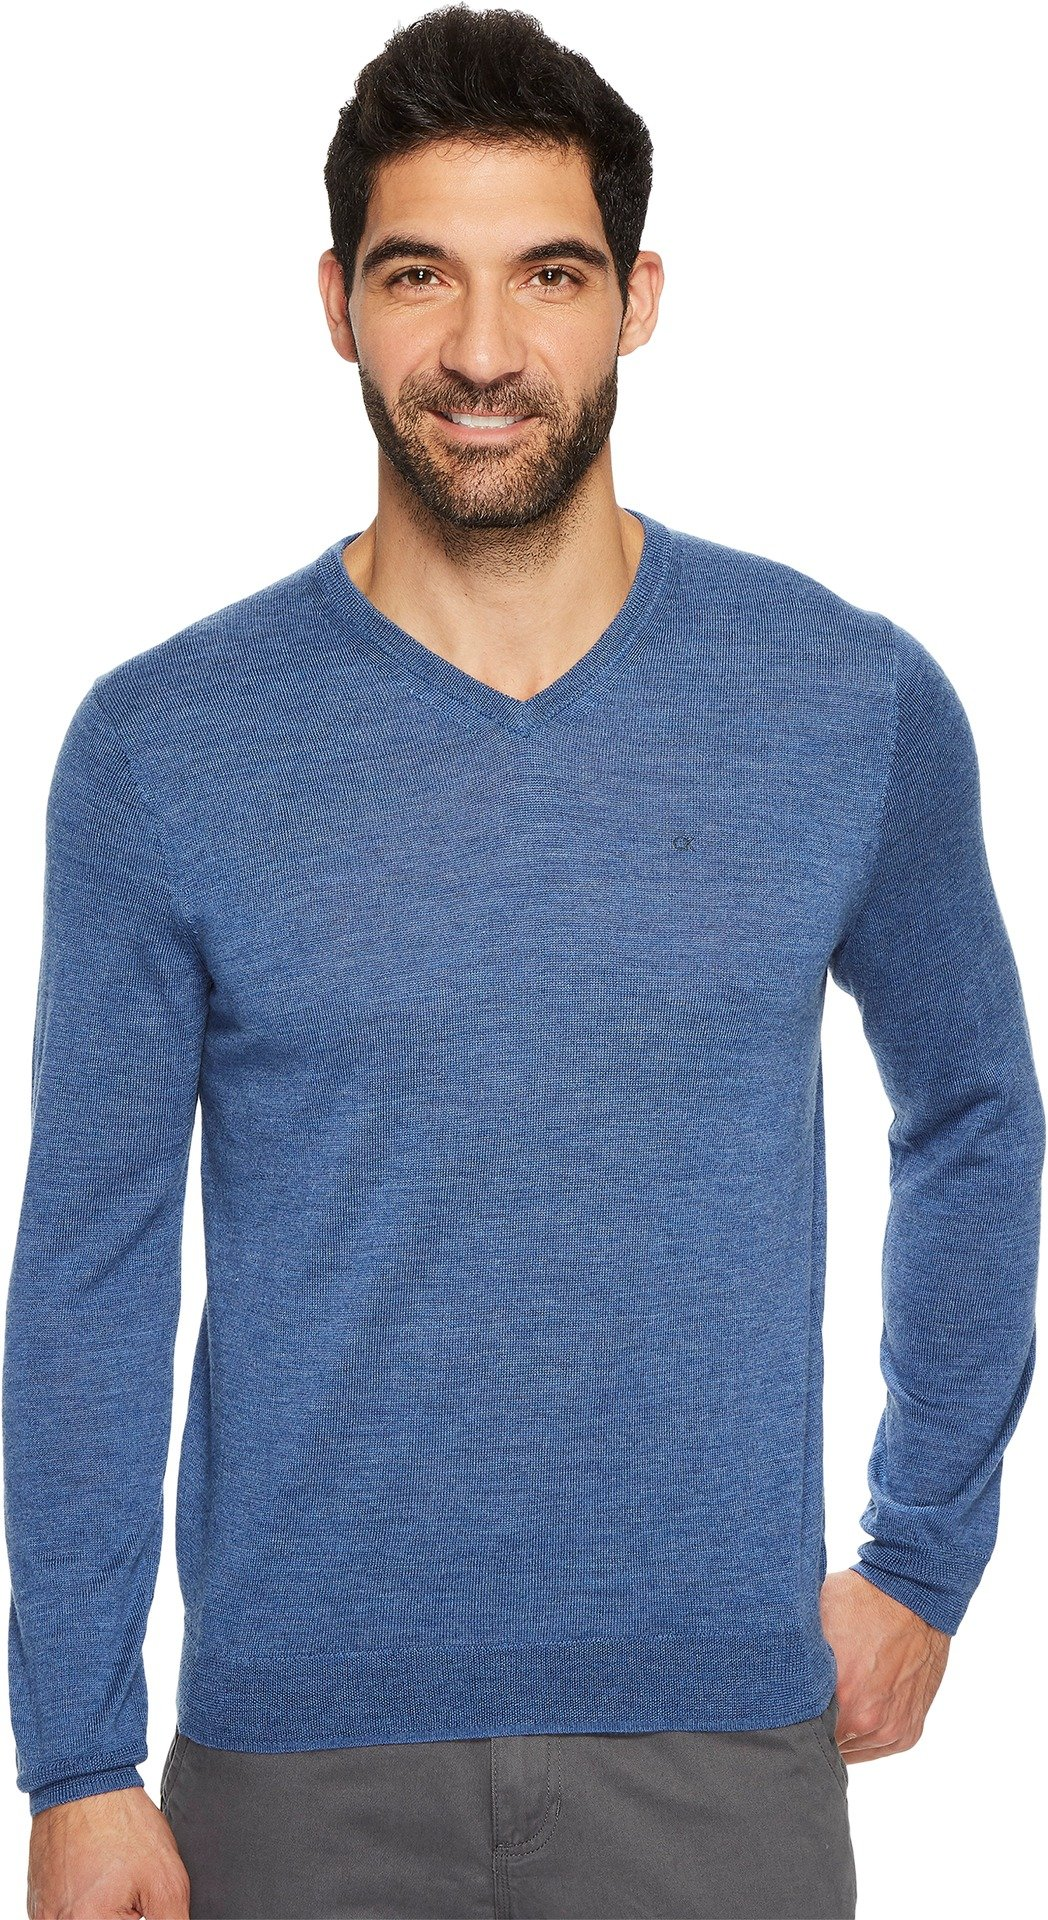 Calvin Klein Men's Merino V-Neck Sweater, Shuttle Heather Blue, Small